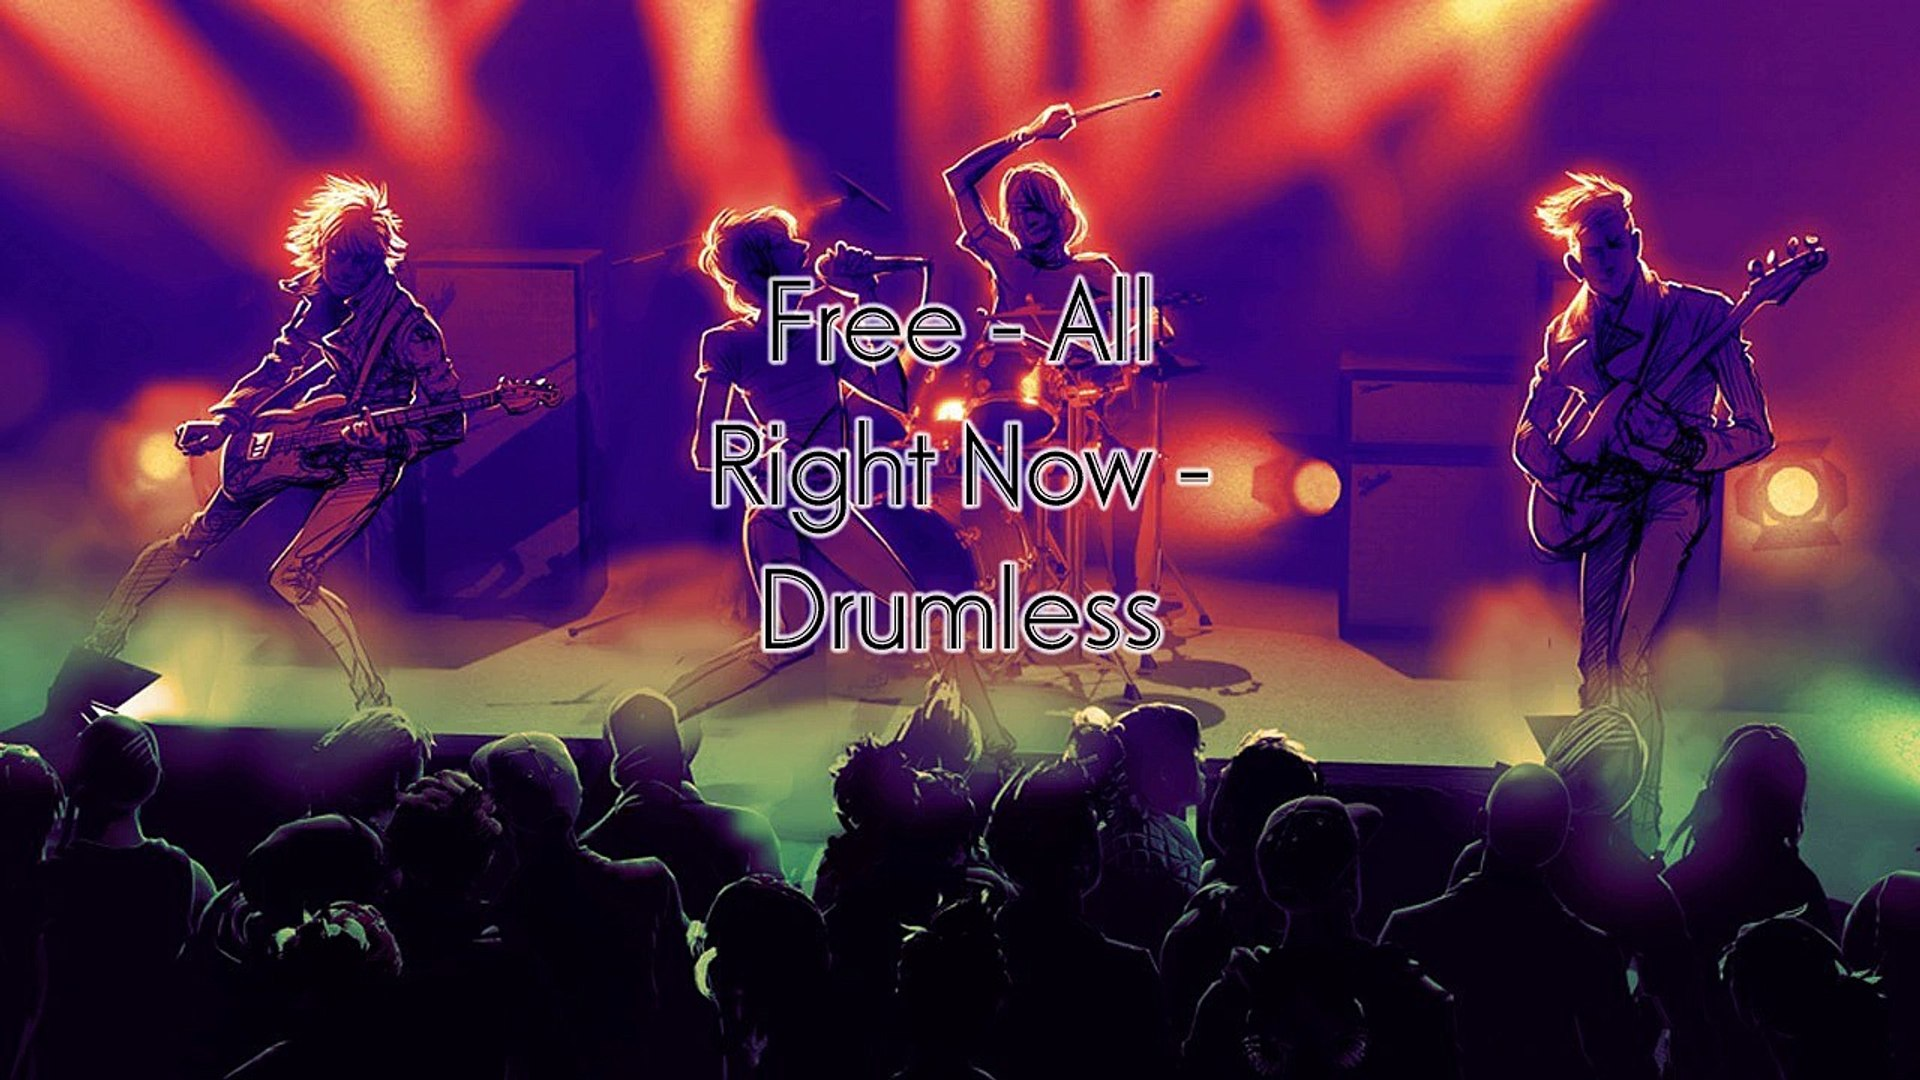 Free - All Right Now - Drumless Track